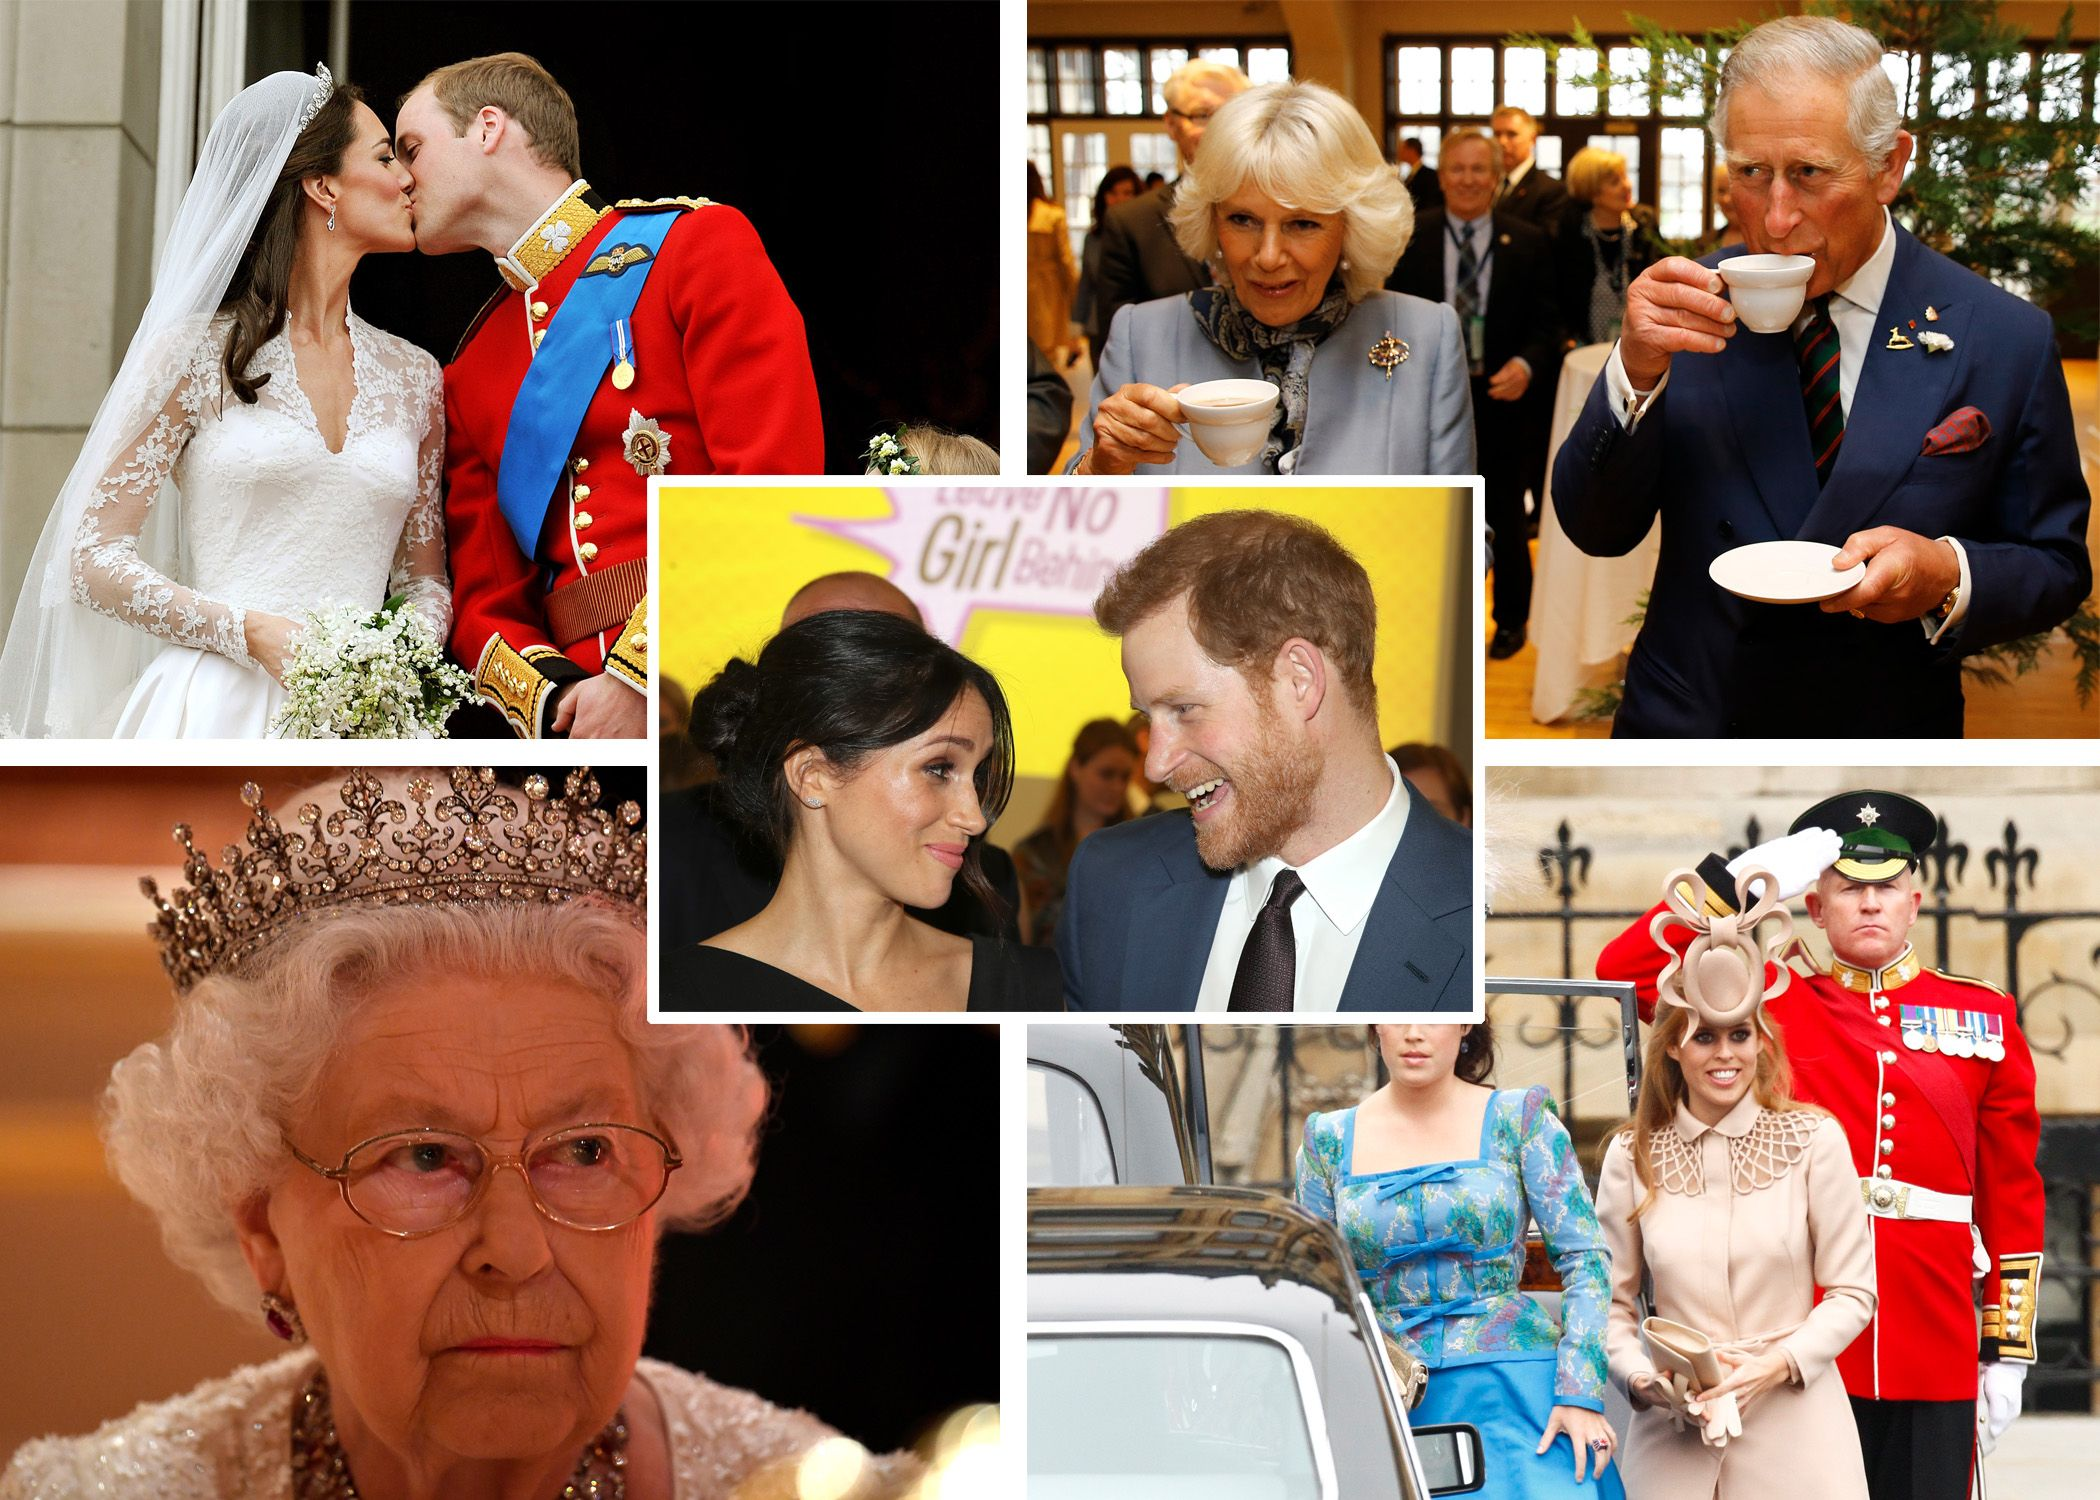 10Unusual Facts About the Royal Family WeHad NoIdea About